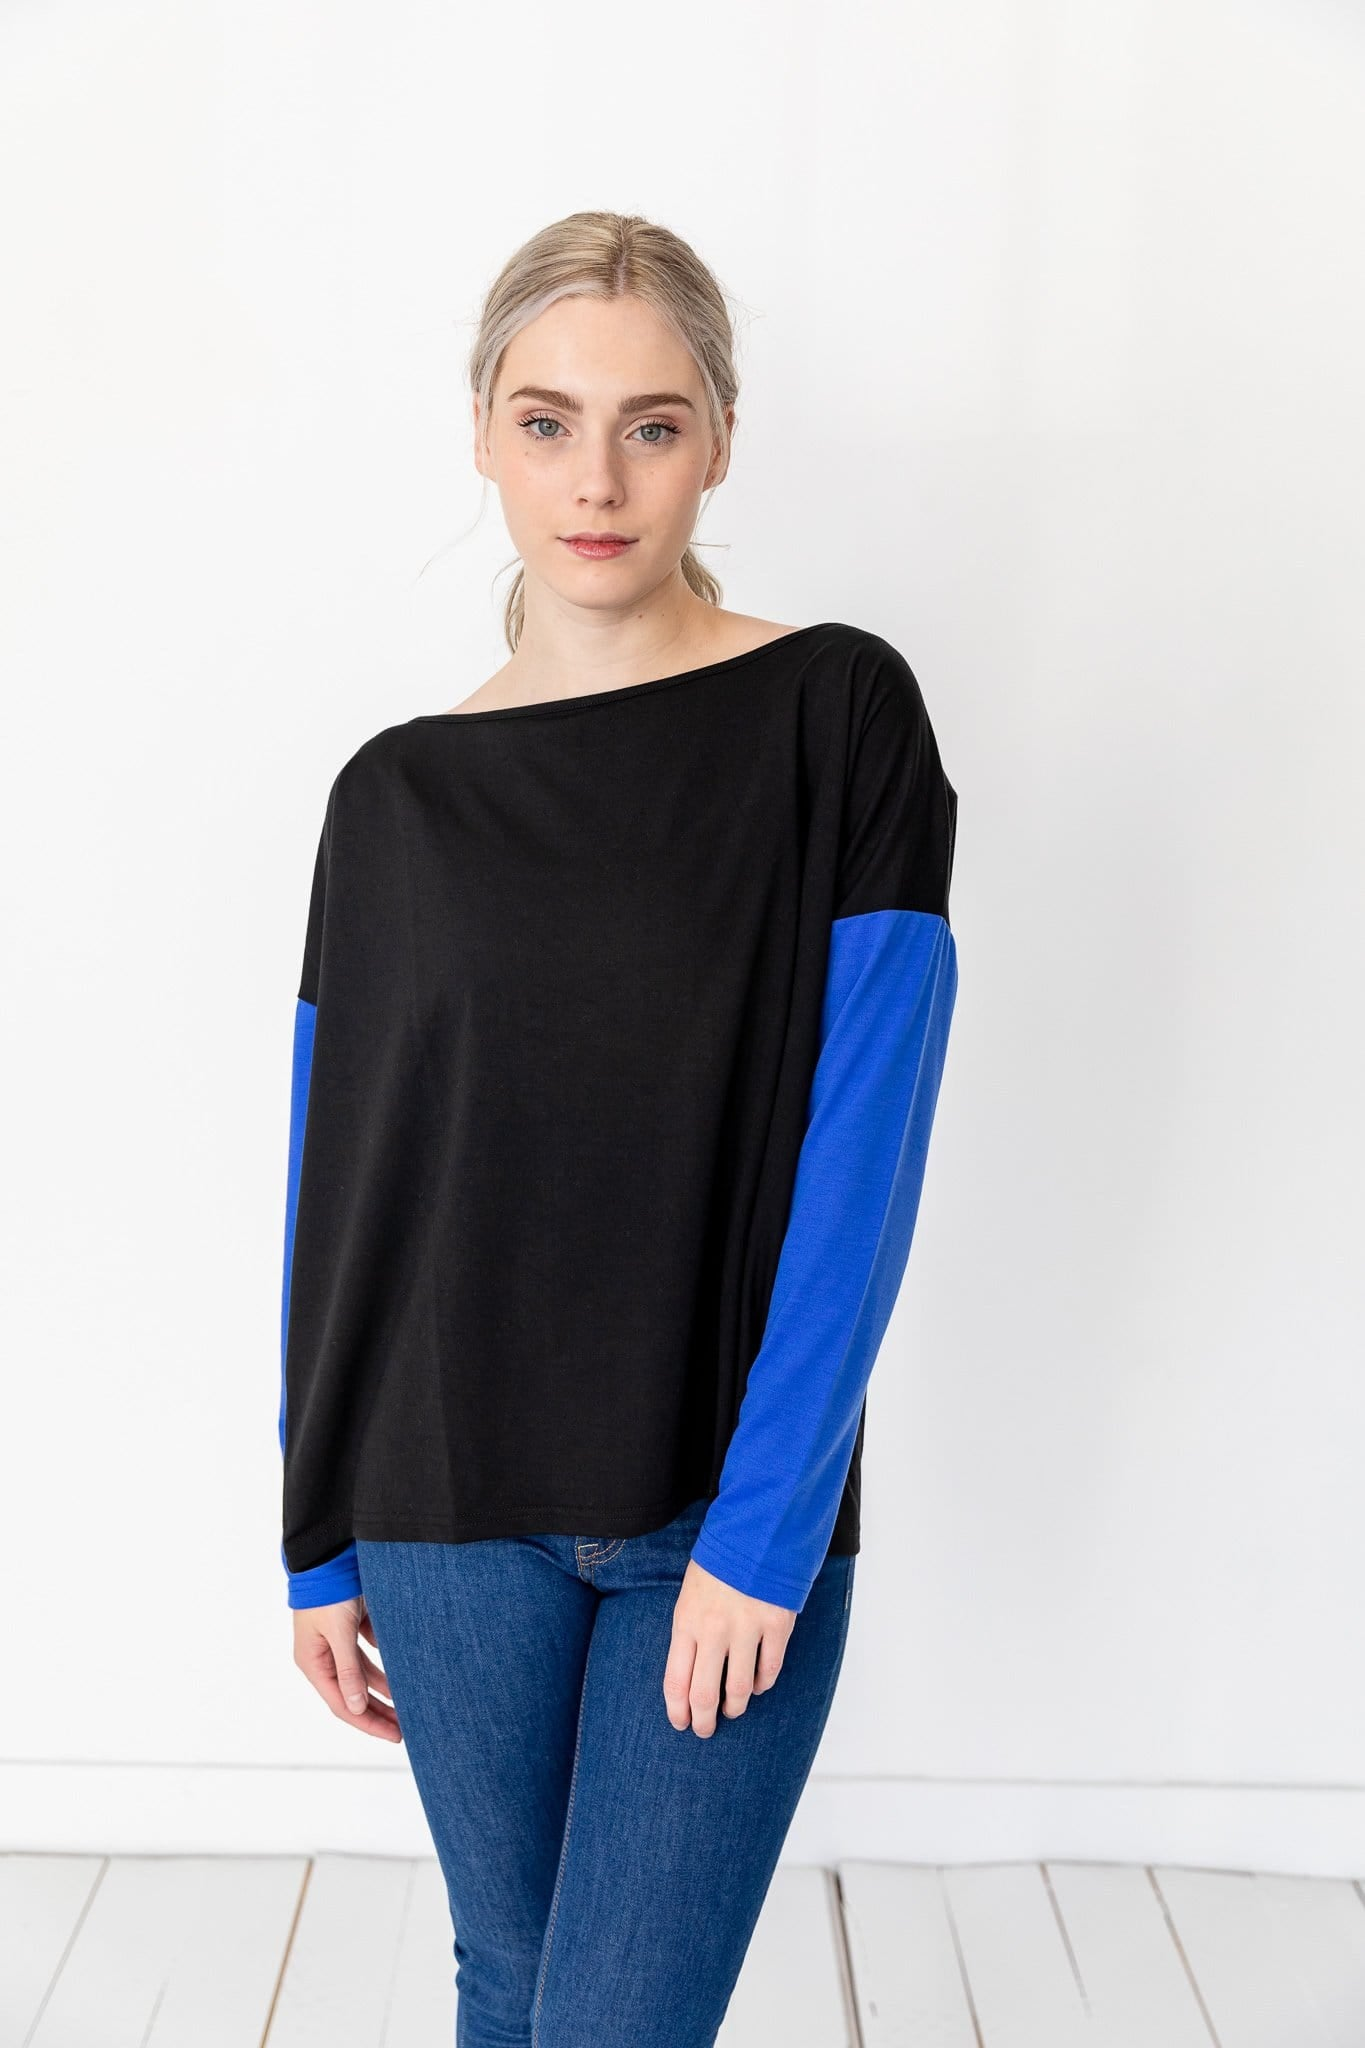 The Sonda Contrast Sleeve Top in Black